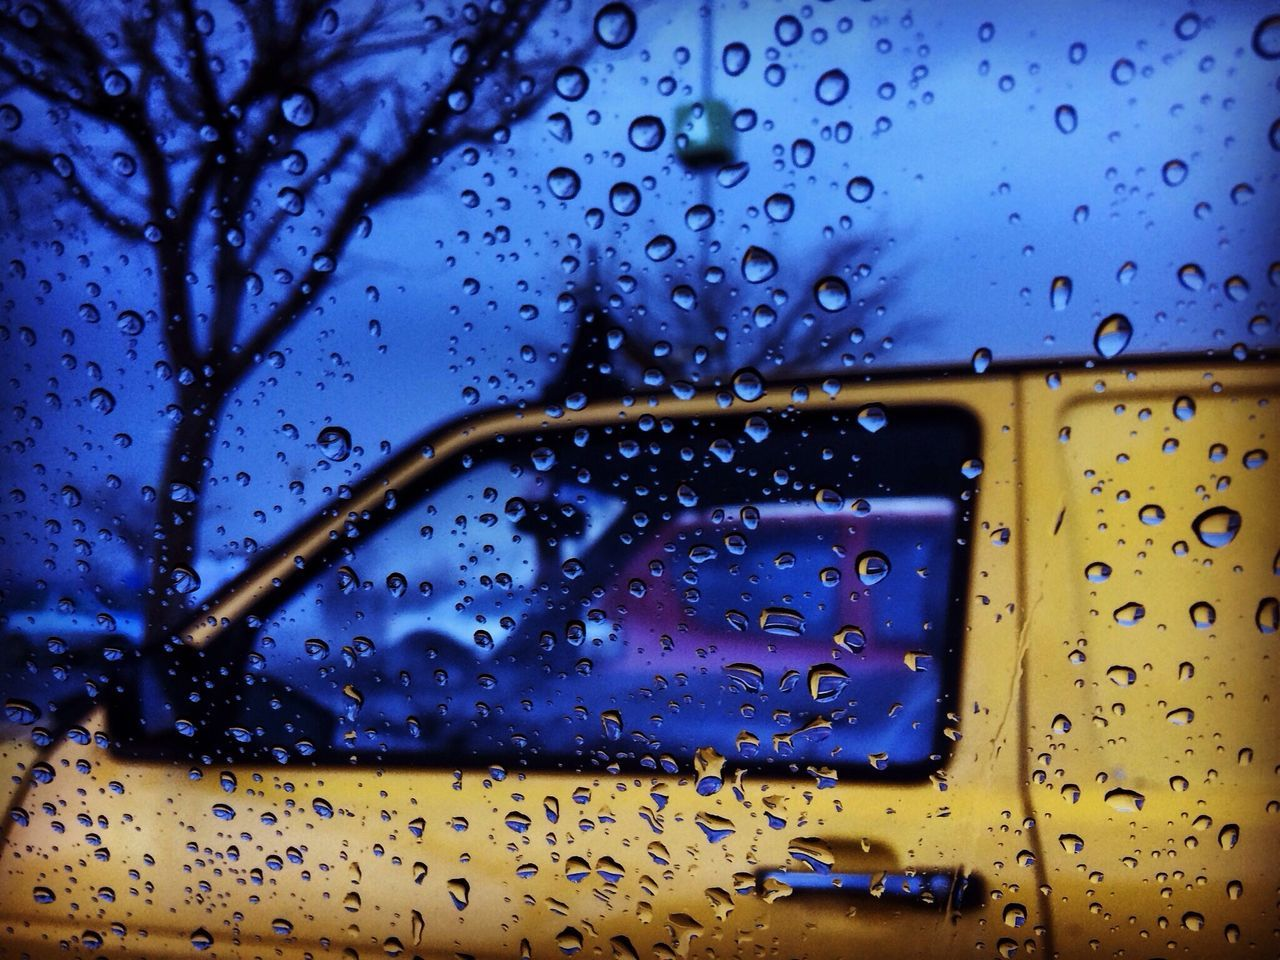 drop, rain, wet, water, raindrop, rainy season, weather, window, glass - material, droplet, water drop, no people, close-up, land vehicle, backgrounds, yellow, mode of transport, full frame, transportation, day, blue, nature, outdoors, dripping, sky, freshness